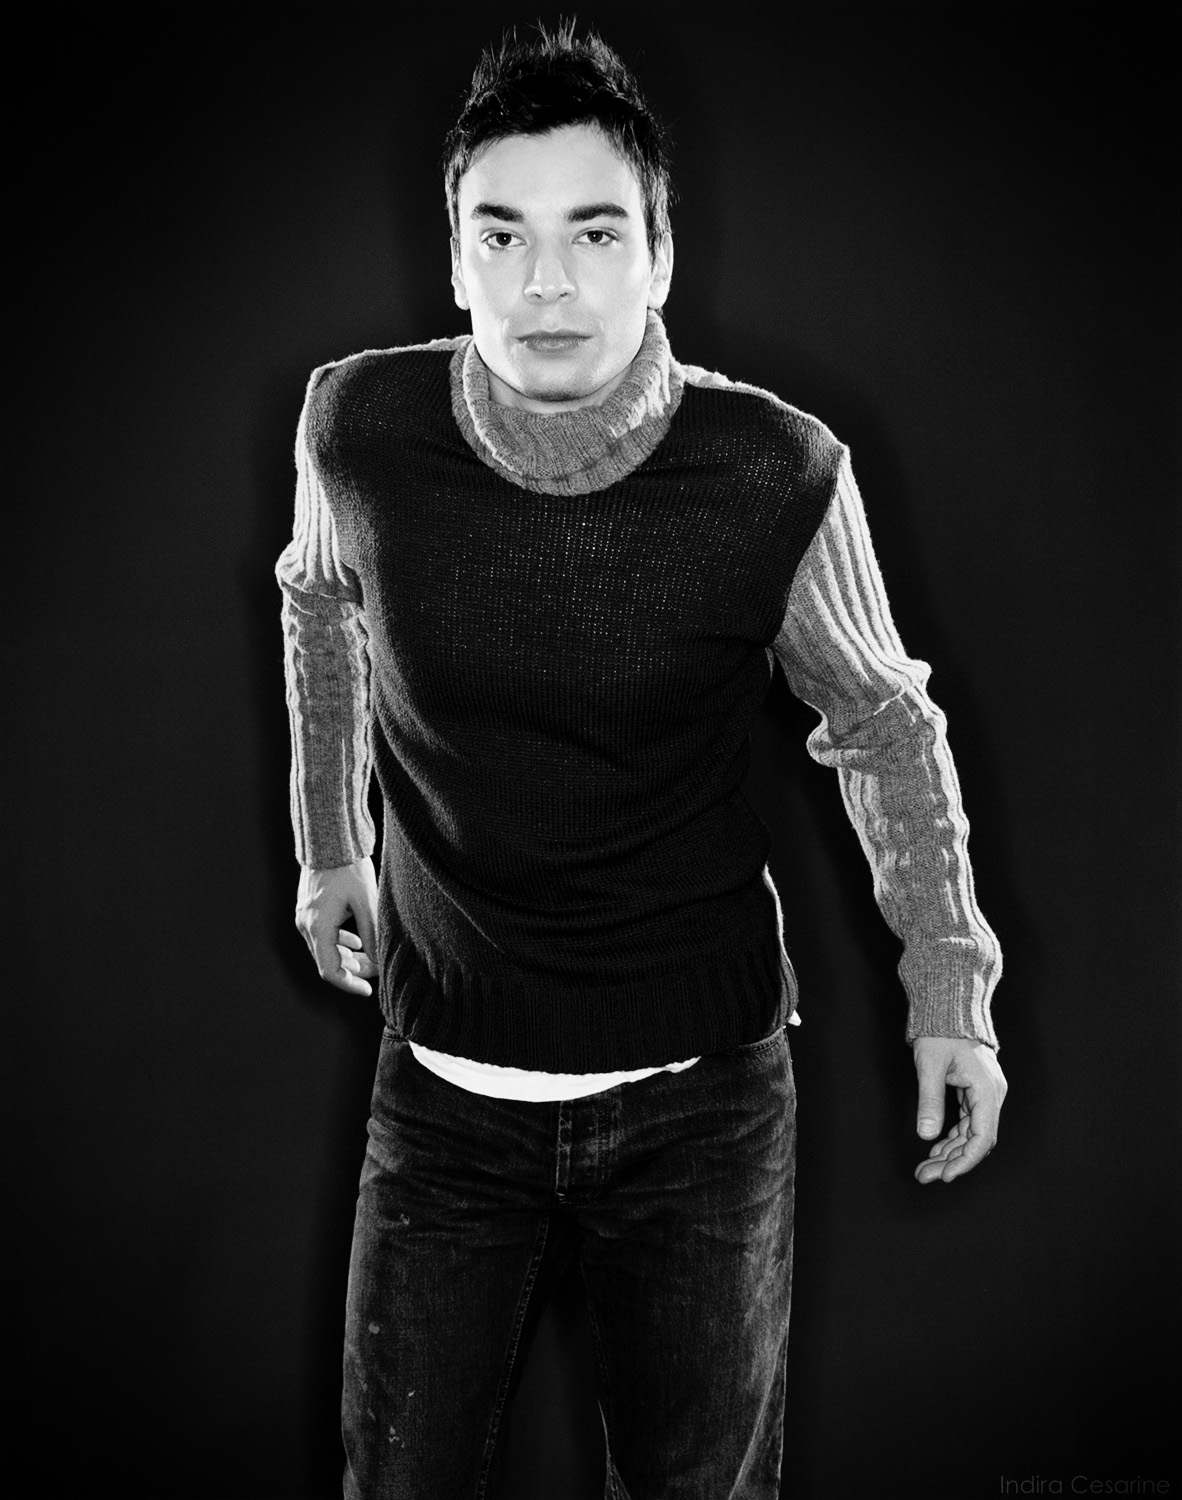 JIMMY-FALLON-Photography-by-Indira-Cesarine-005-bw.jpg